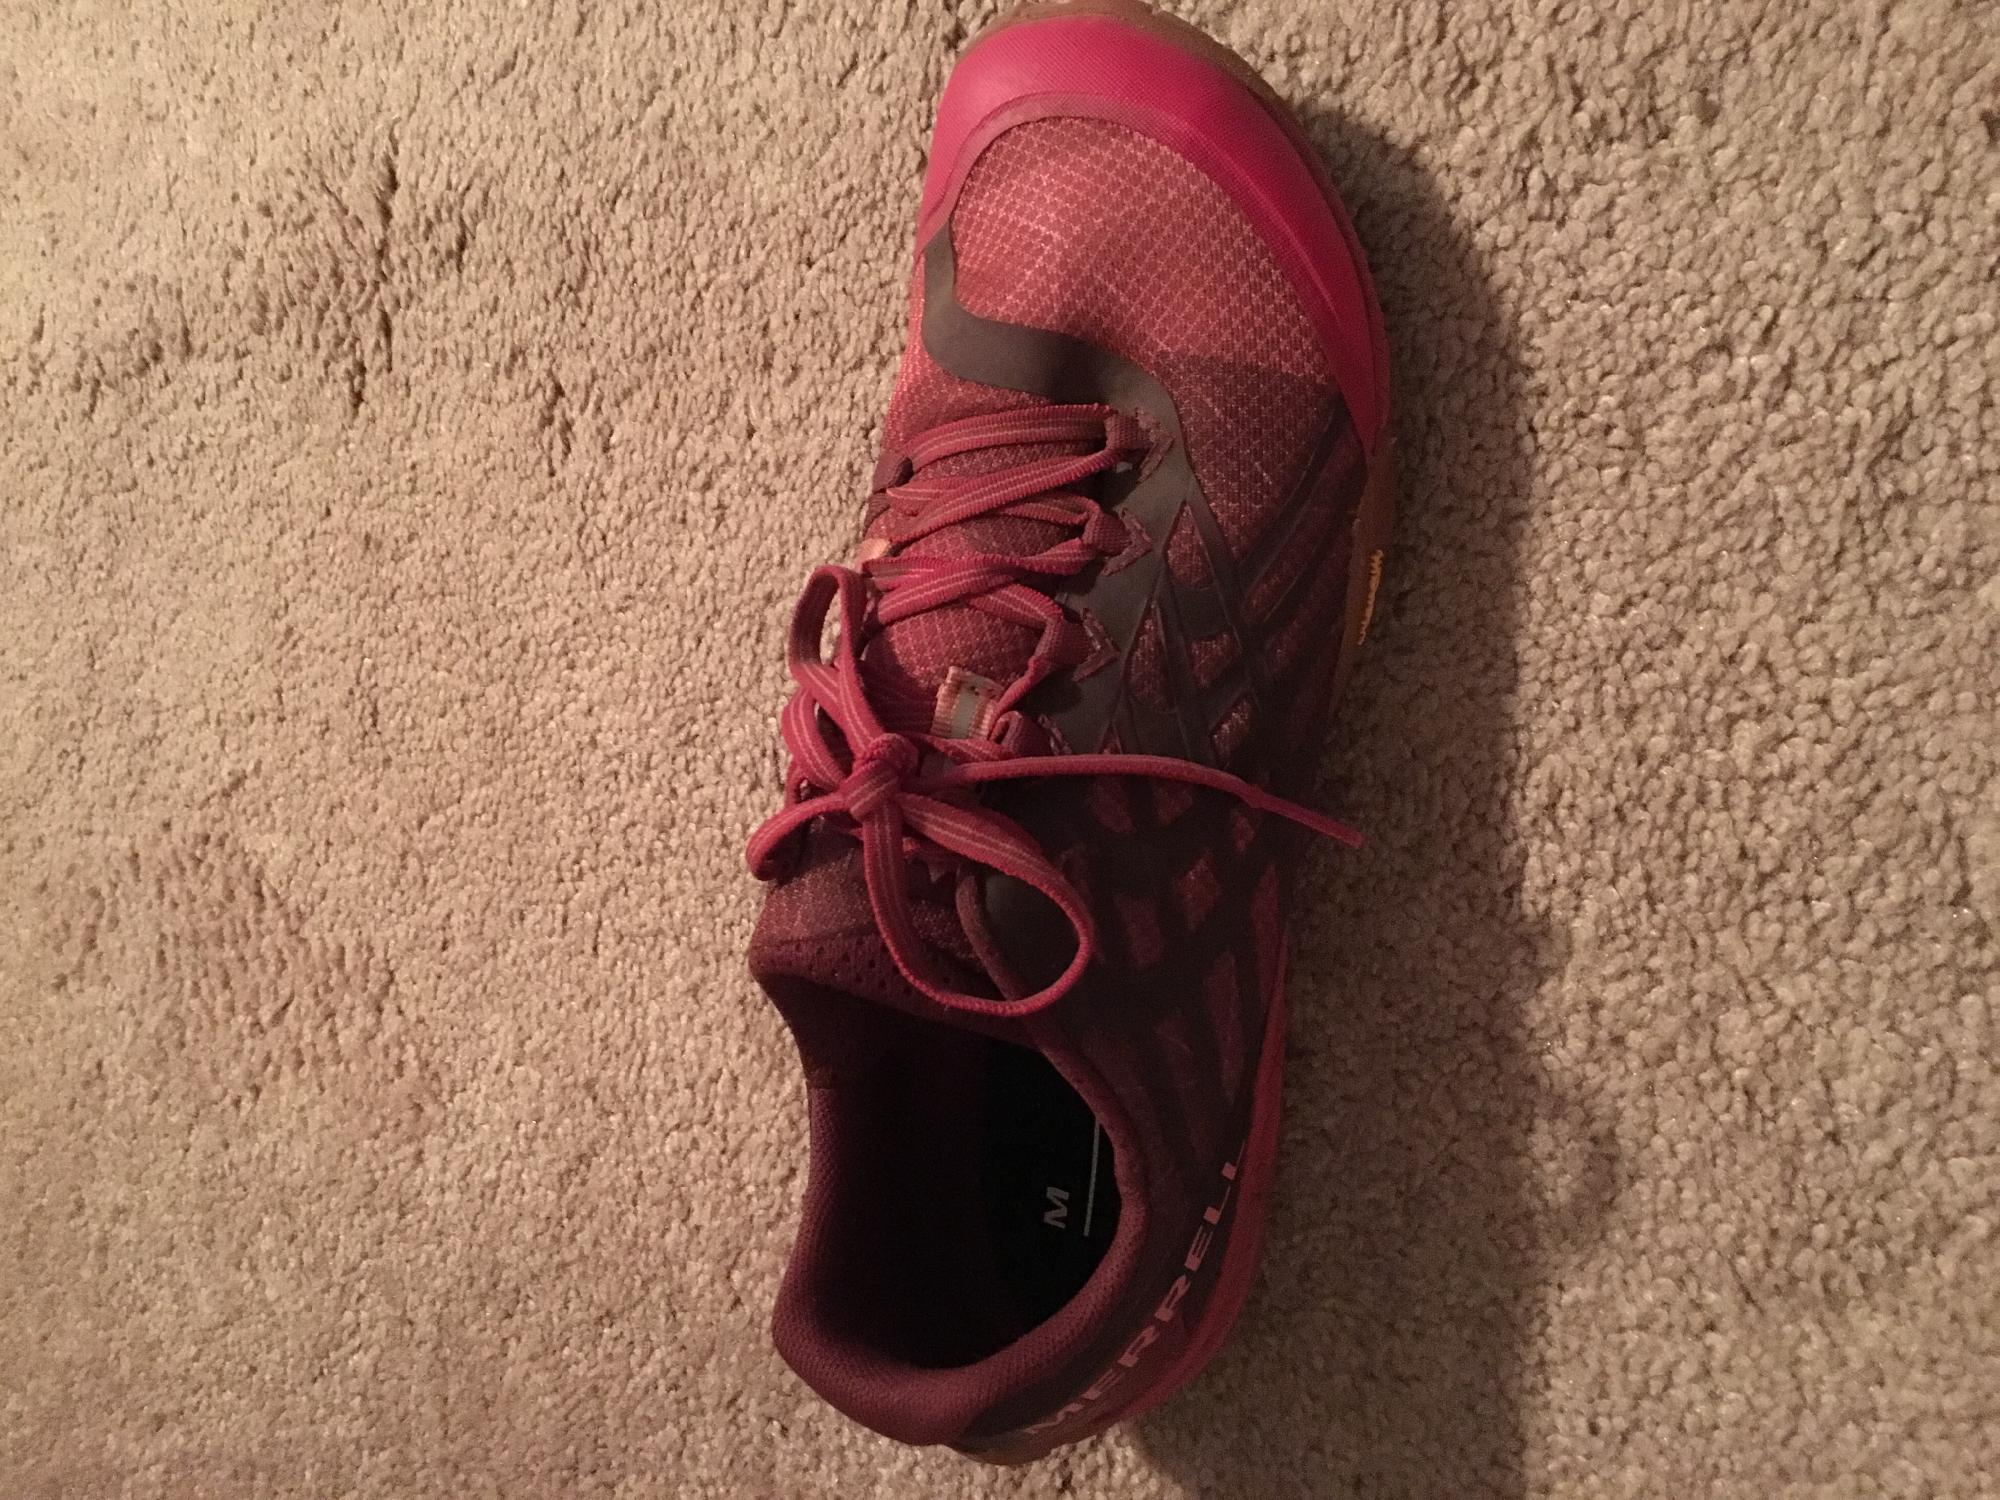 Merrell Trail Glove 4 Women's Shoes Persian Red   Barefoot